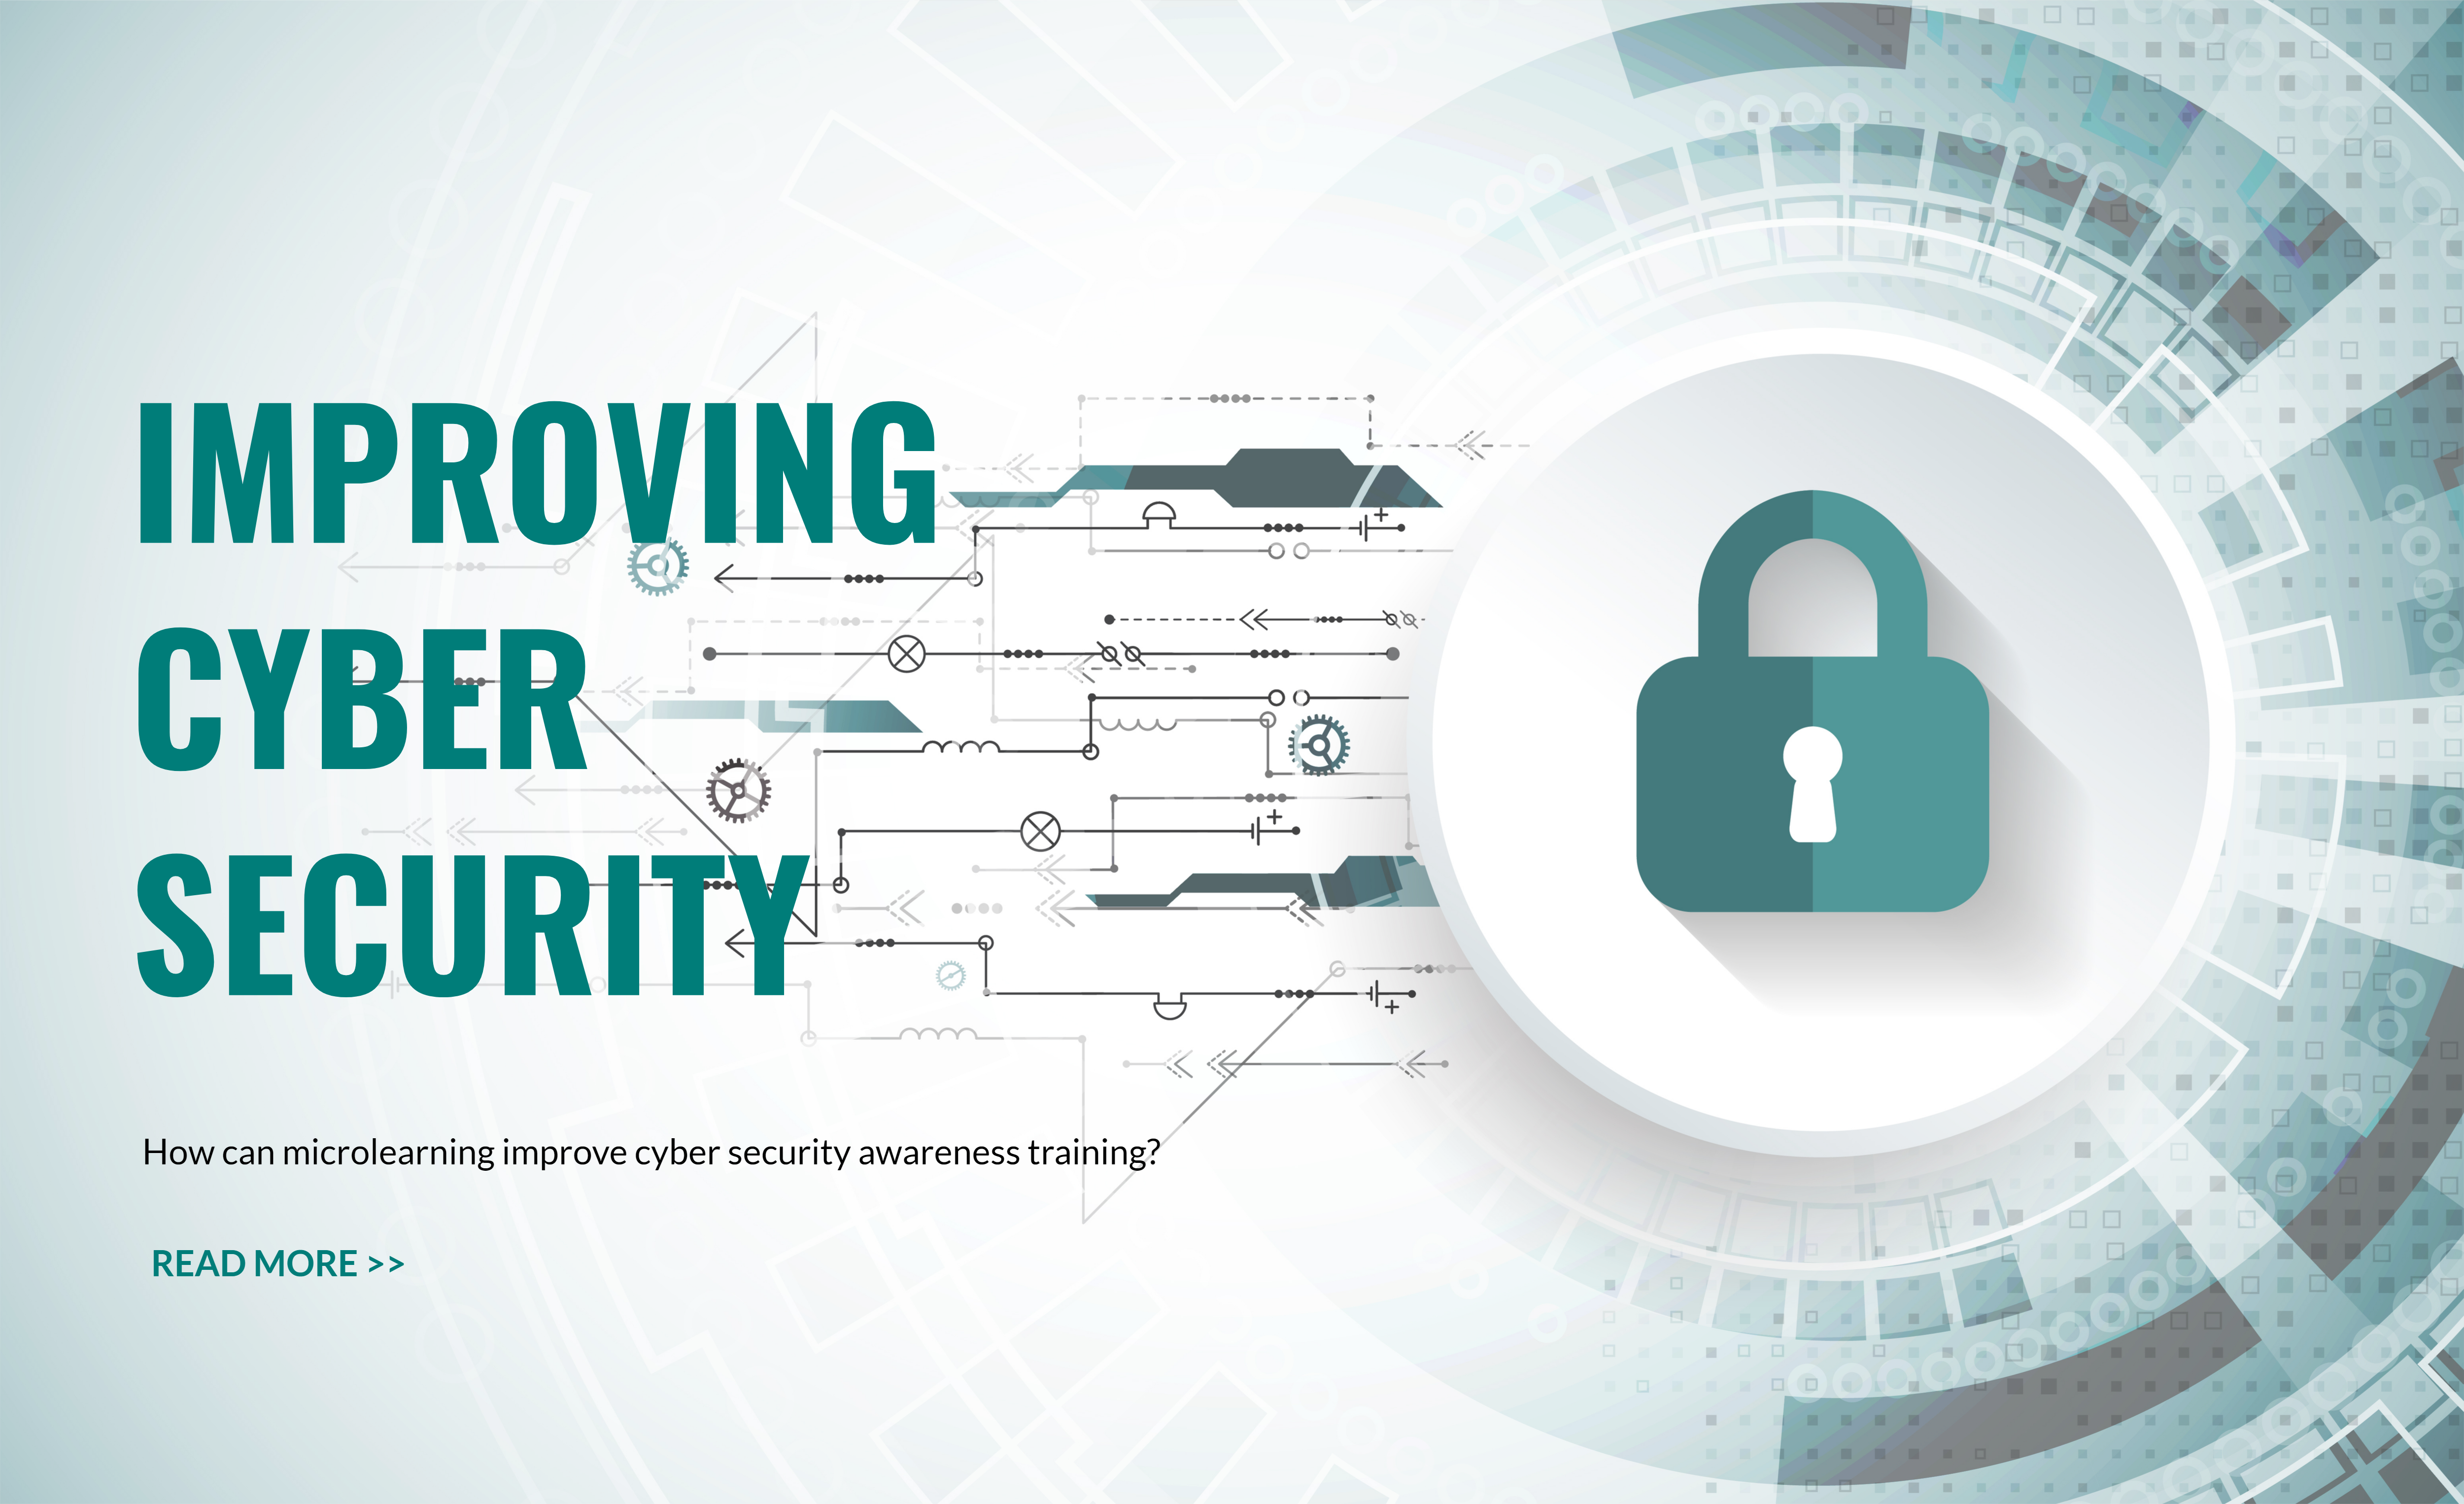 Microlearning for cyber security training